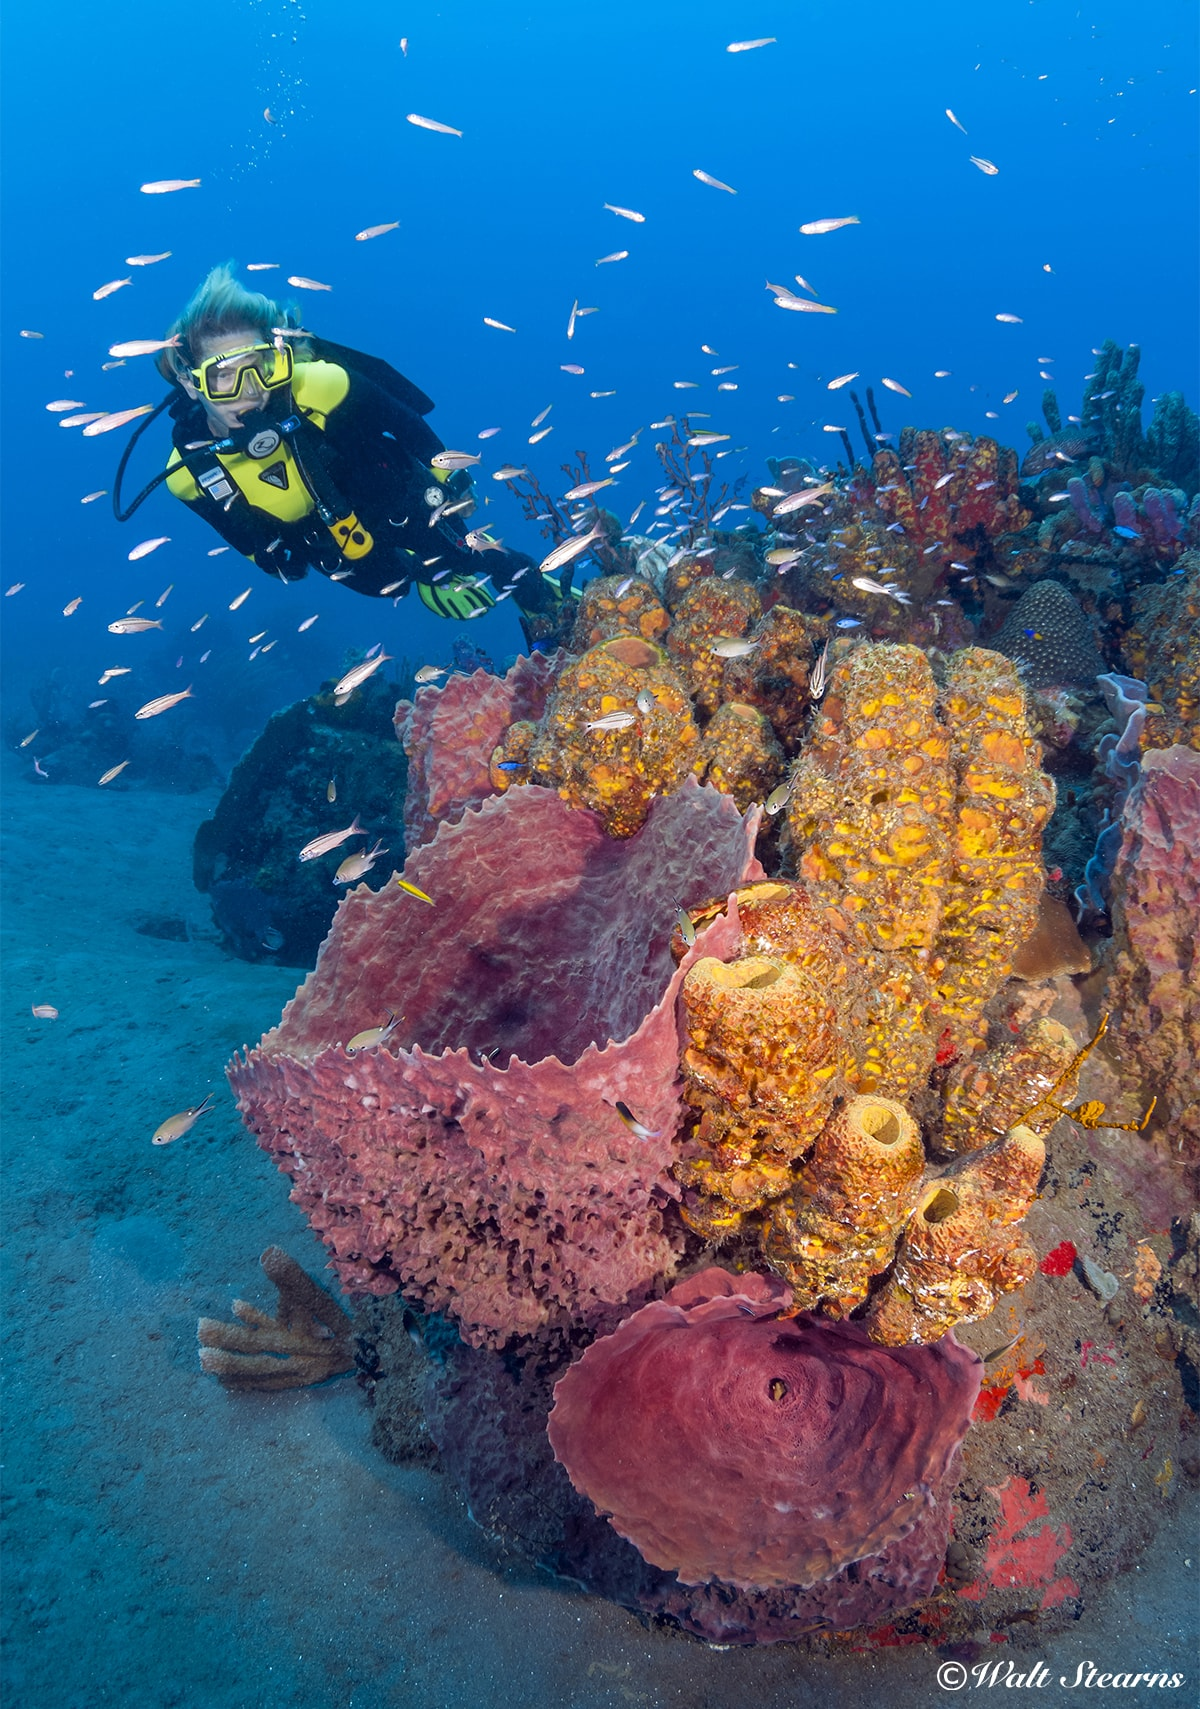 Sponges not only add color to the reef, they are highly efficient filter feeders that remove organic matter from the water.